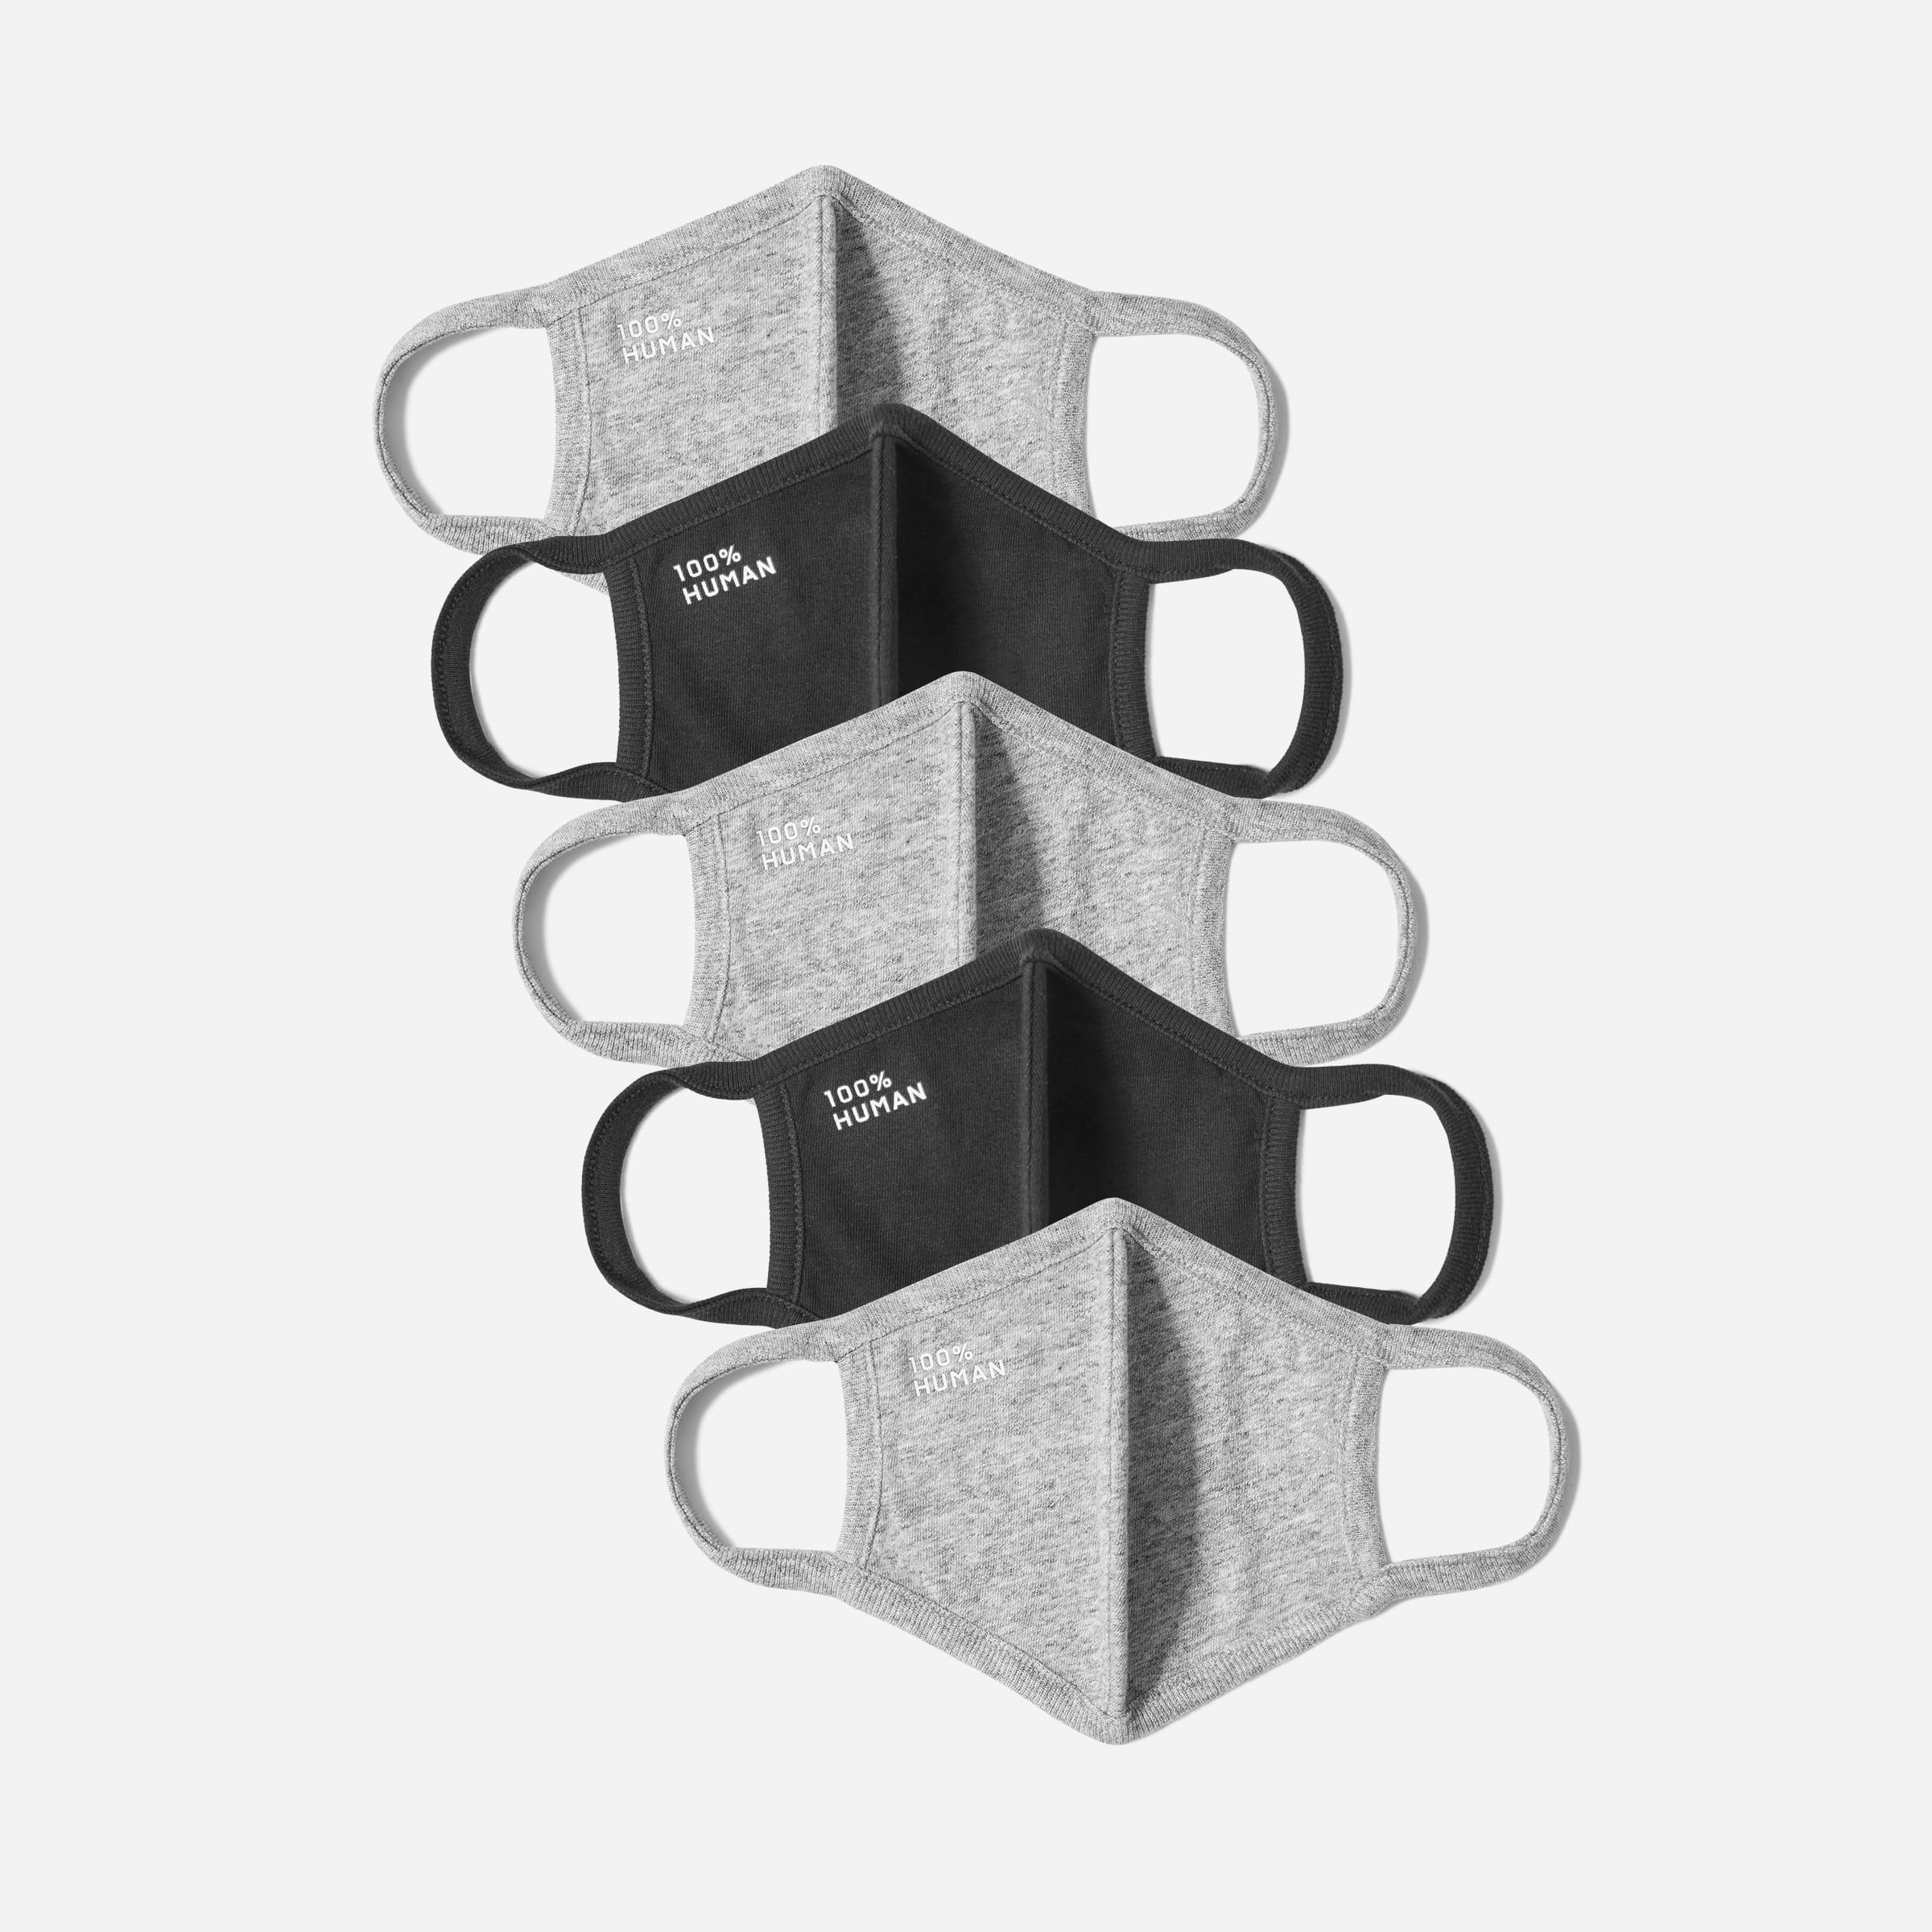 Everlane The 100% Human face mask five-pack